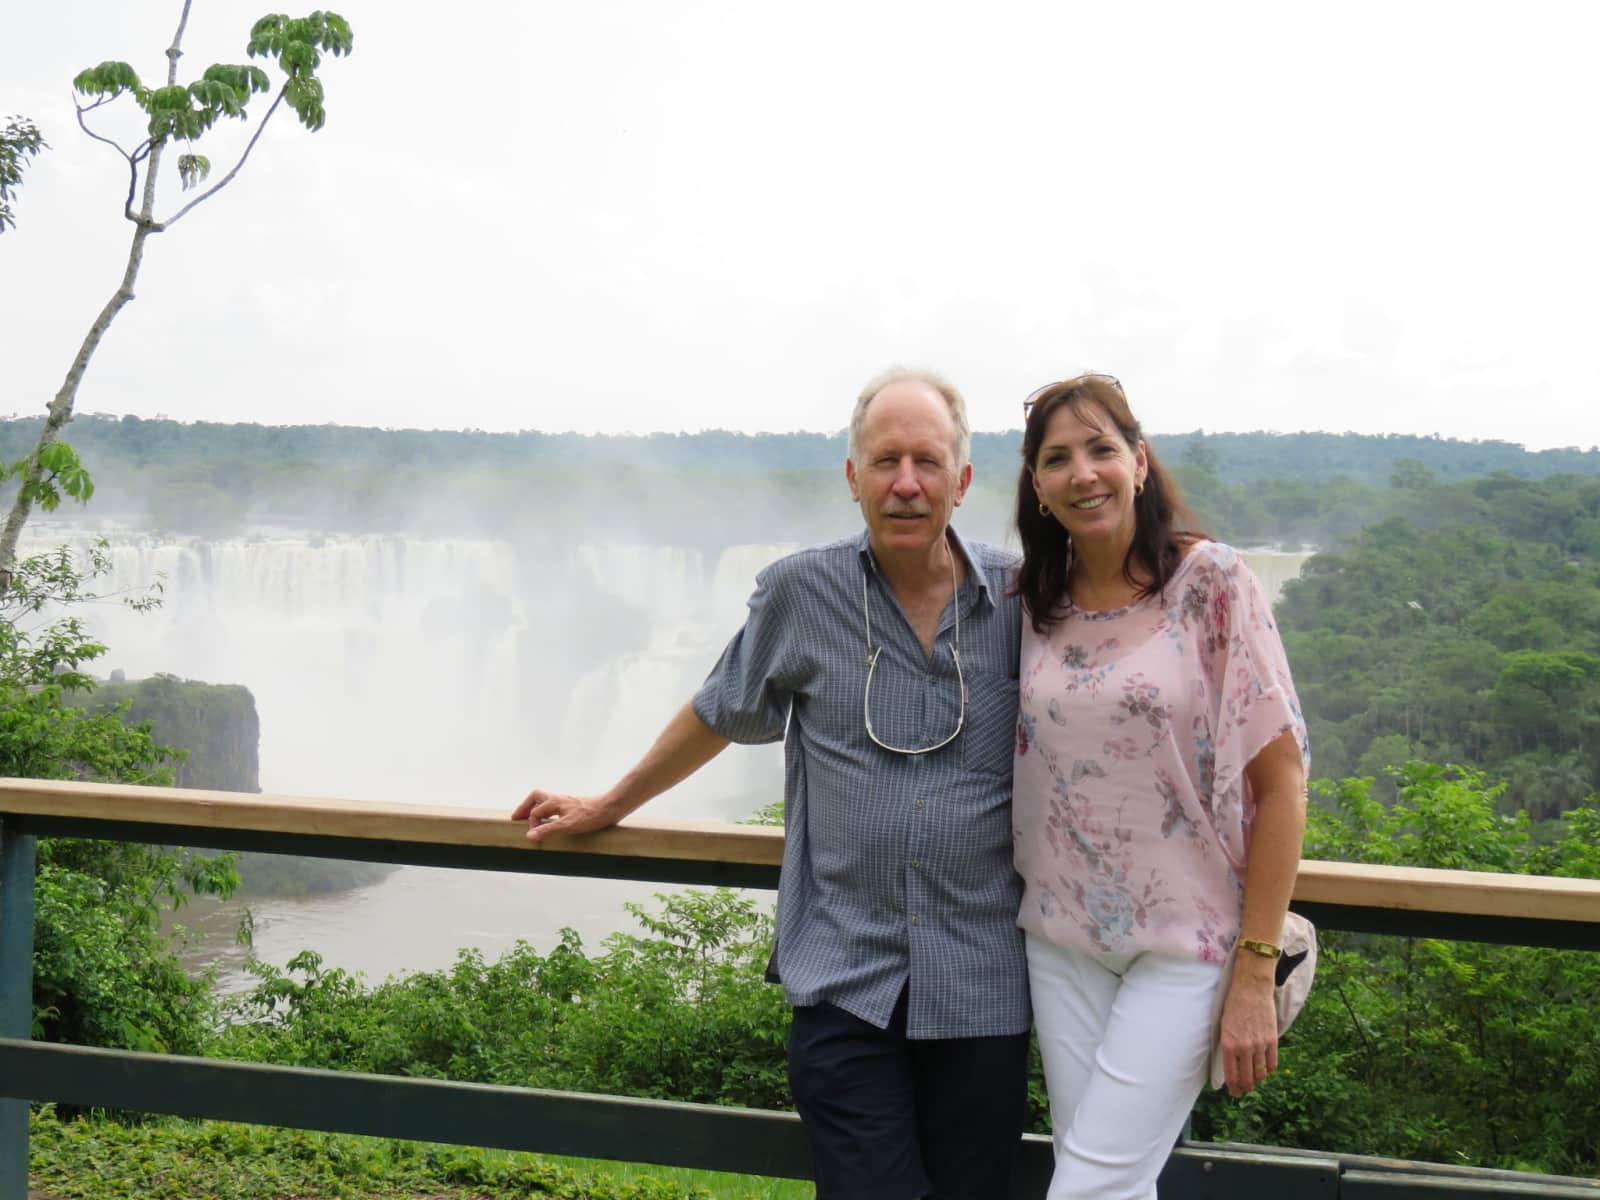 Alison & Kevin from Pretoria, South Africa